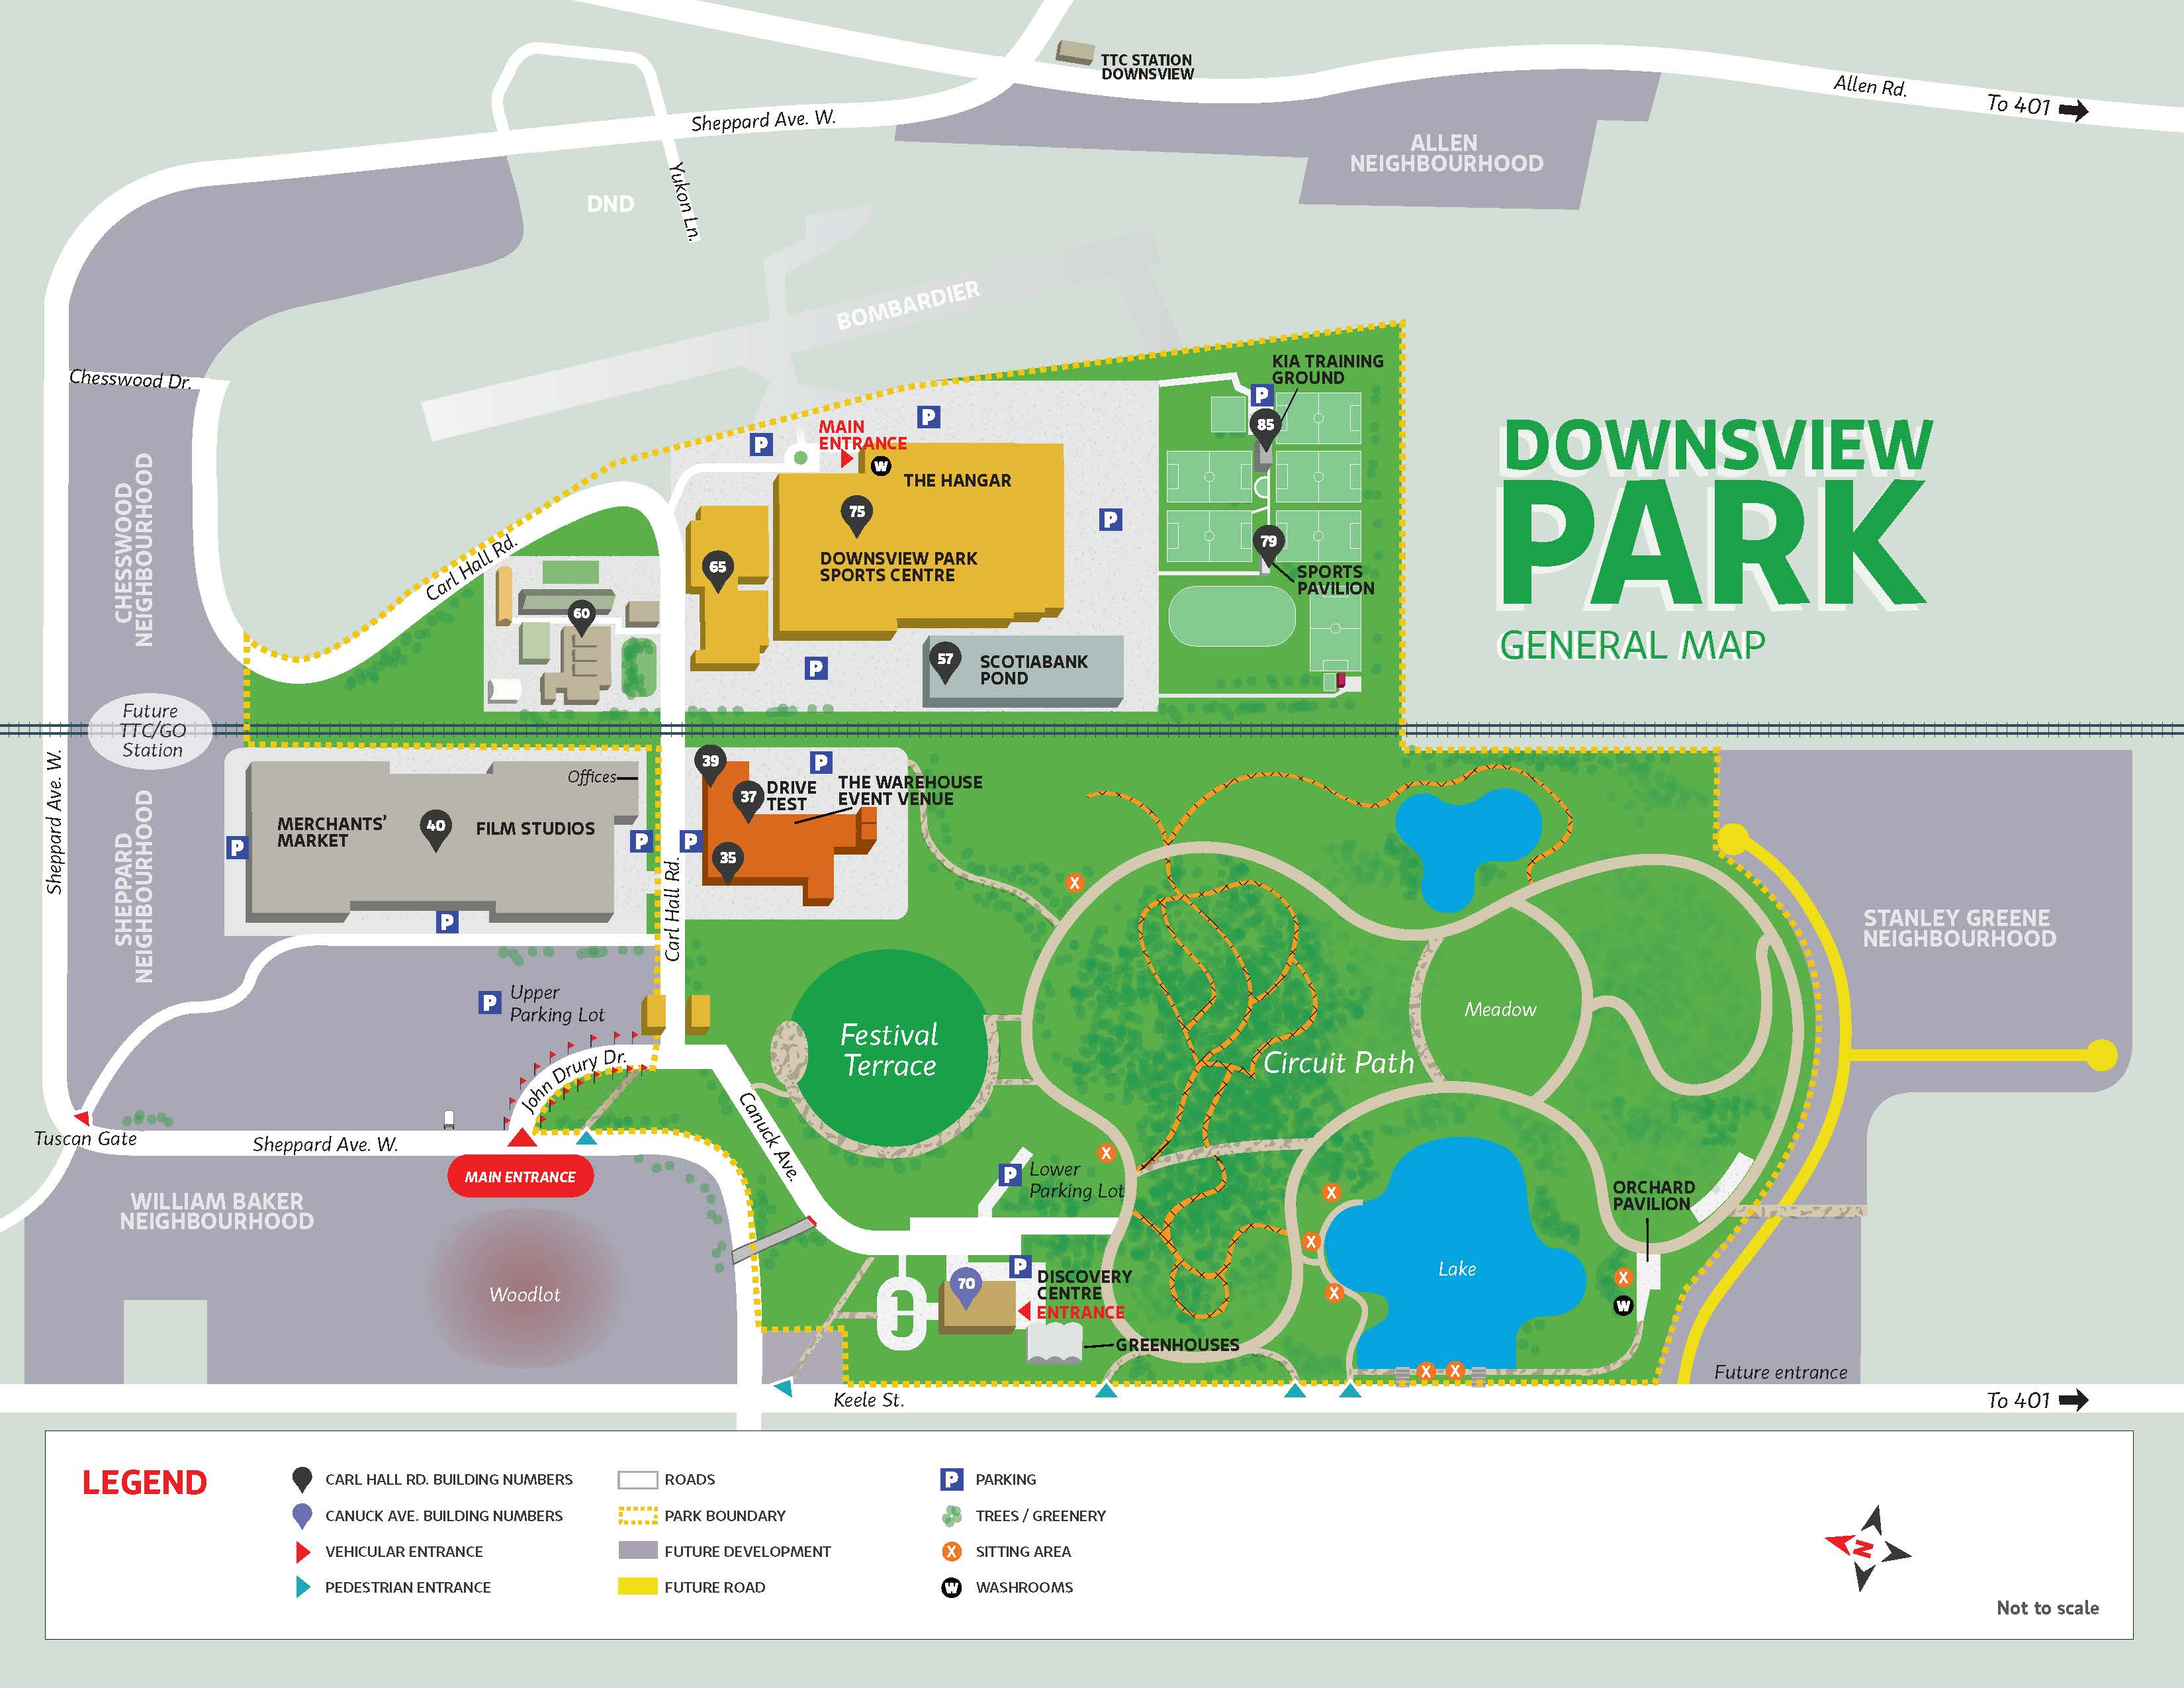 Downsview_Park_Map.jpg